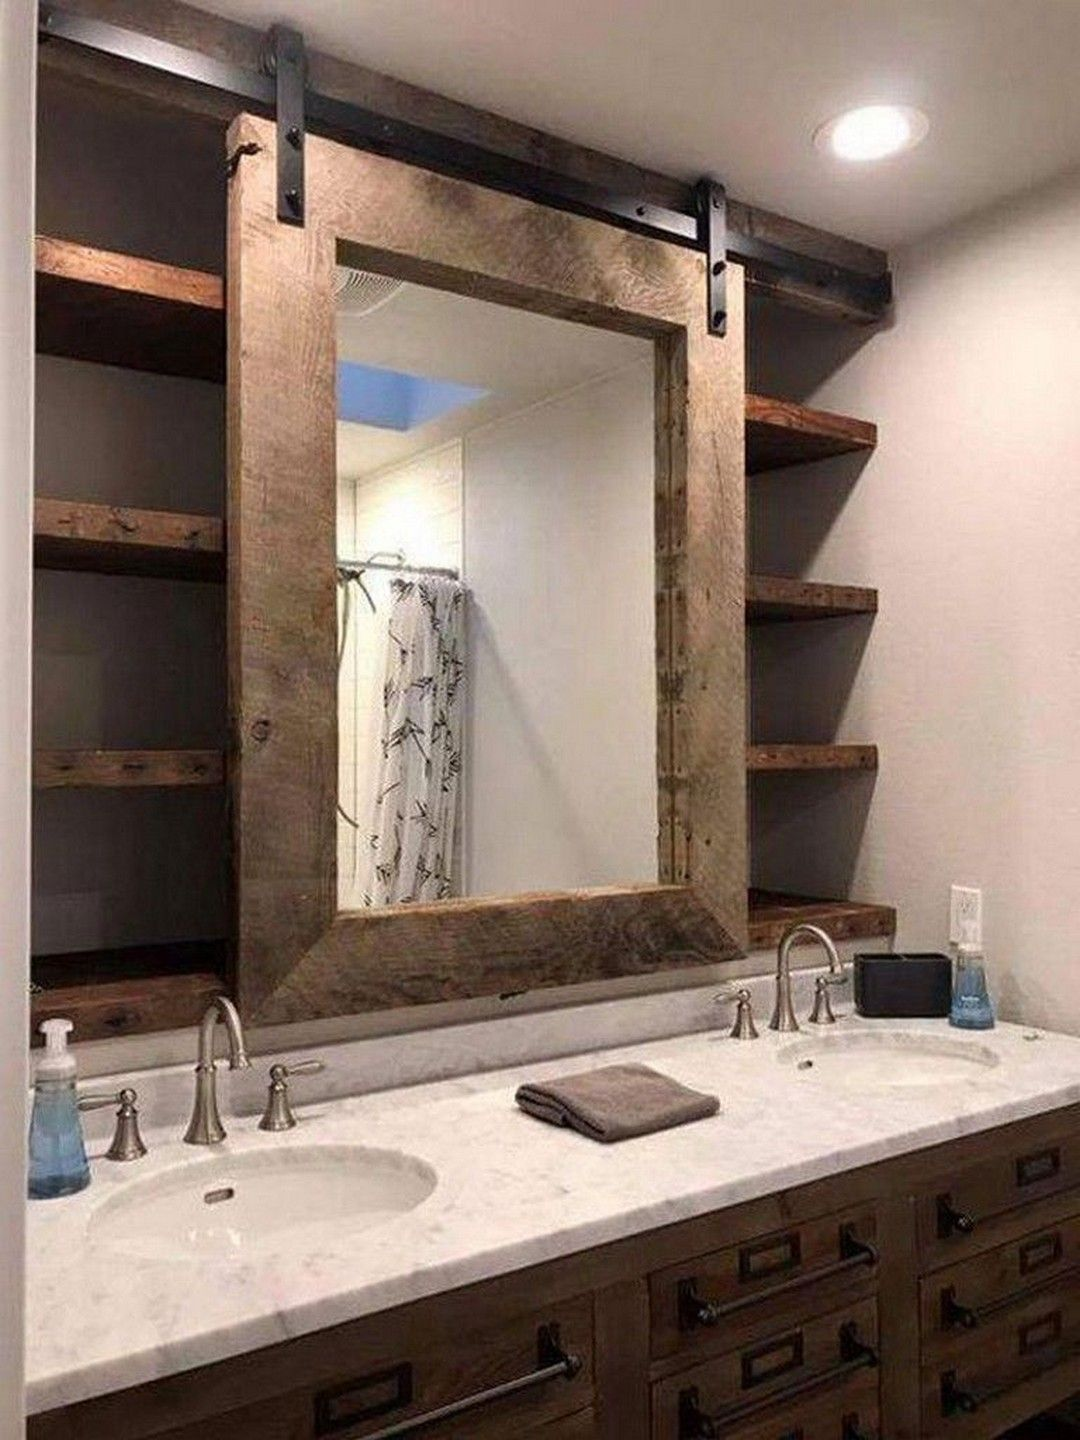 22 Ways To Boost And Refresh Your Bathroom By Adding Wood Accents: Ways To Boost And Refresh Your Bathroom By Adding Wood Accents